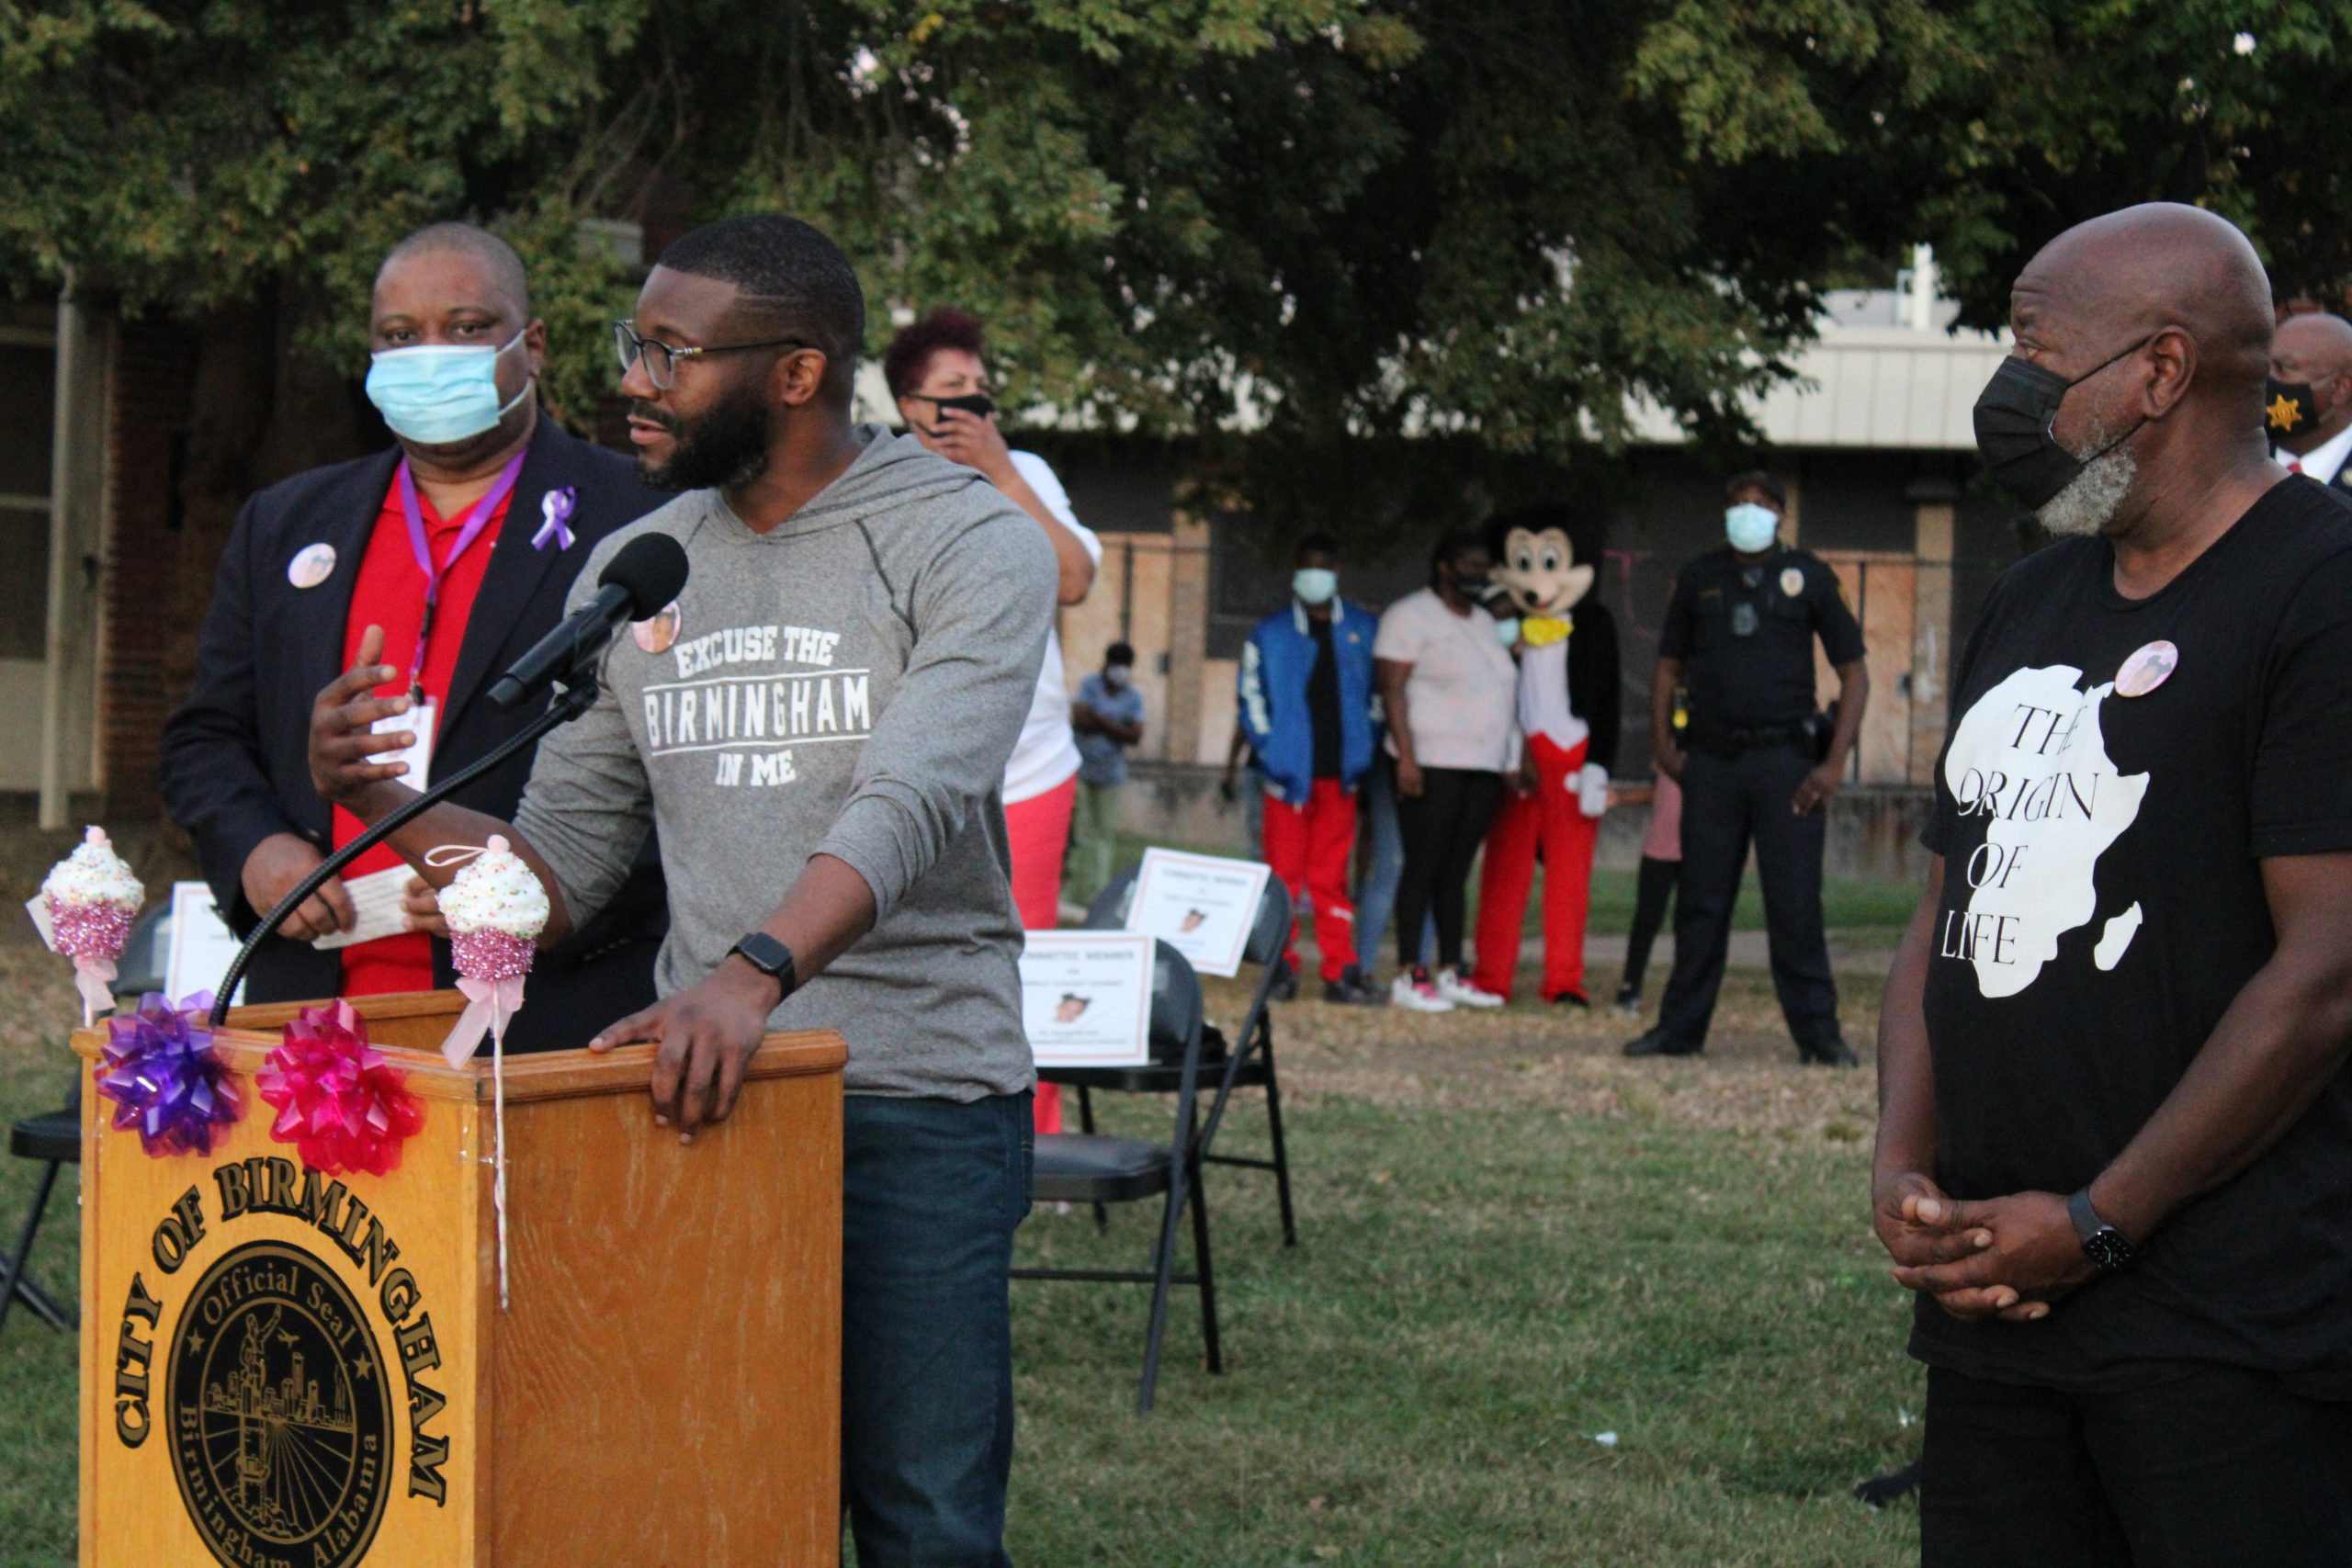 """Birmingham Mayor Randall Woodfin (at podium) addresses the crowd during a memorial tribute to Kamille """"Cupcake"""" McKinney, a 3-year-old girl who was murdered in the Avondale neighborhood last year. City Council President William Parker (left) and City Councilor John Hilliard flank the mayor. (Sydney Melson, The Birmingham Times)"""